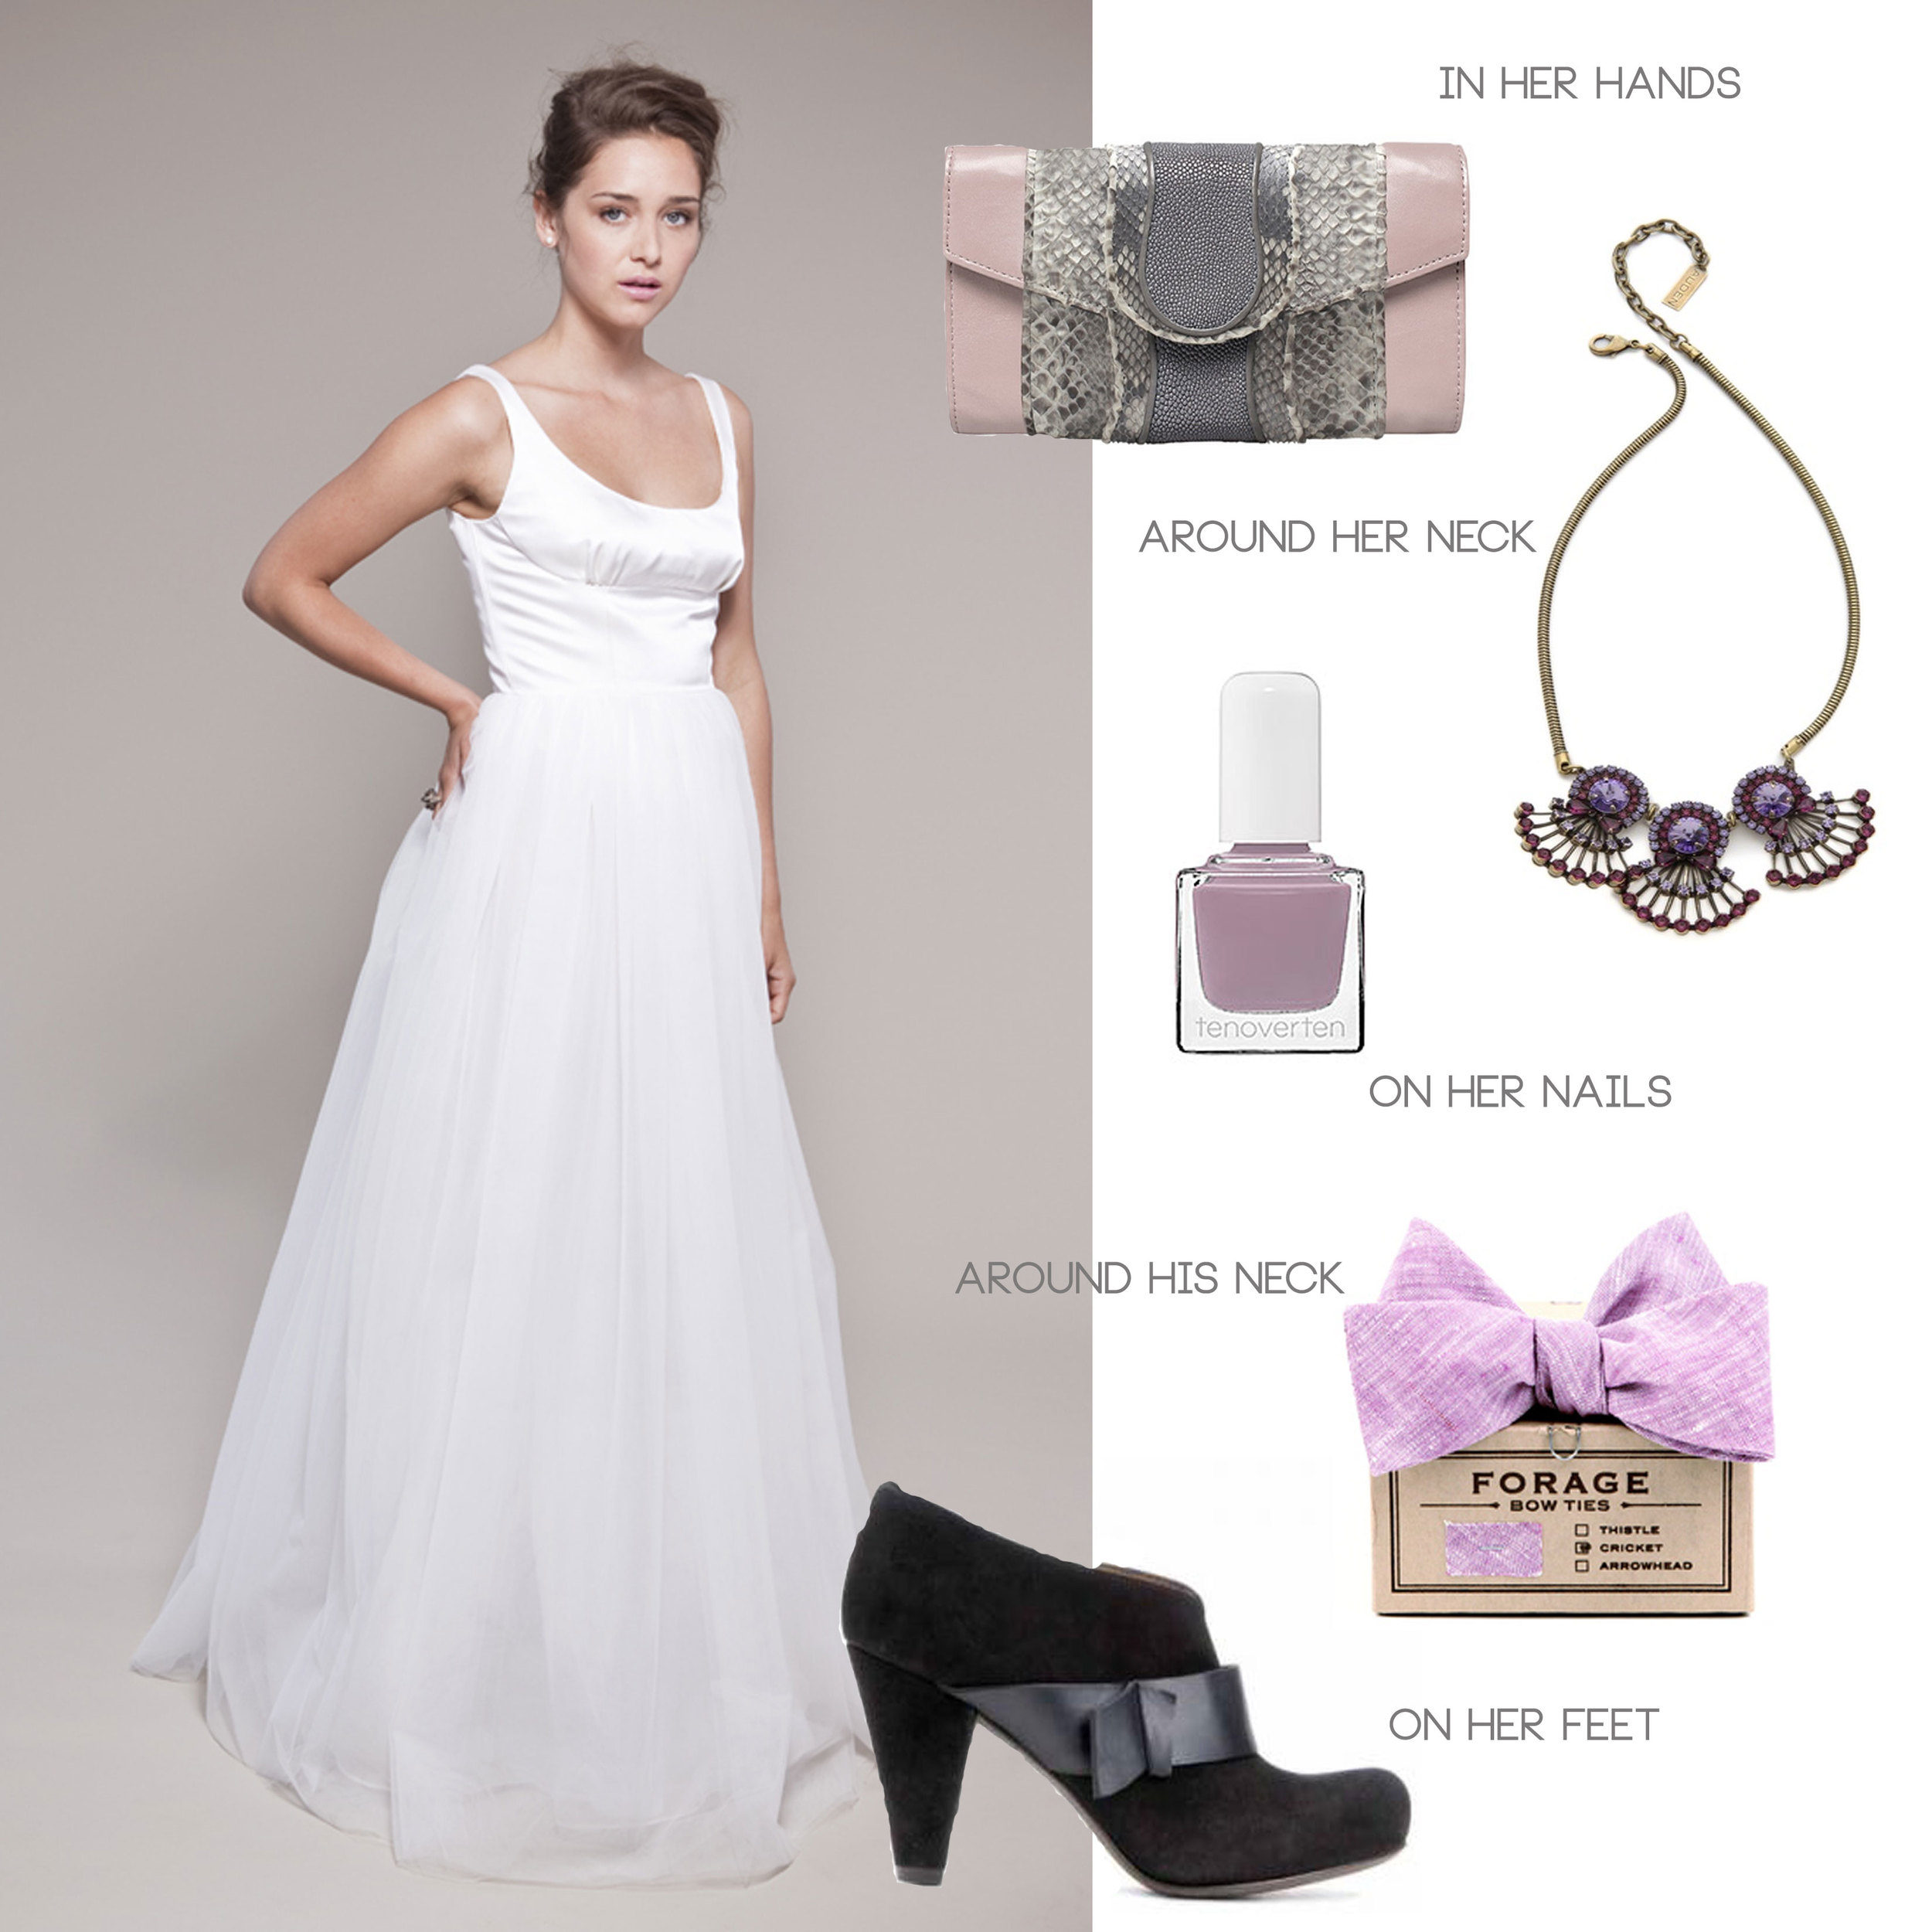 Wedding, Bridal, Fashion, Gown, Clutch, Nail Polish, Lavender, Purple, Booties, Bow Tie, Lilac, Necklace, Crystals